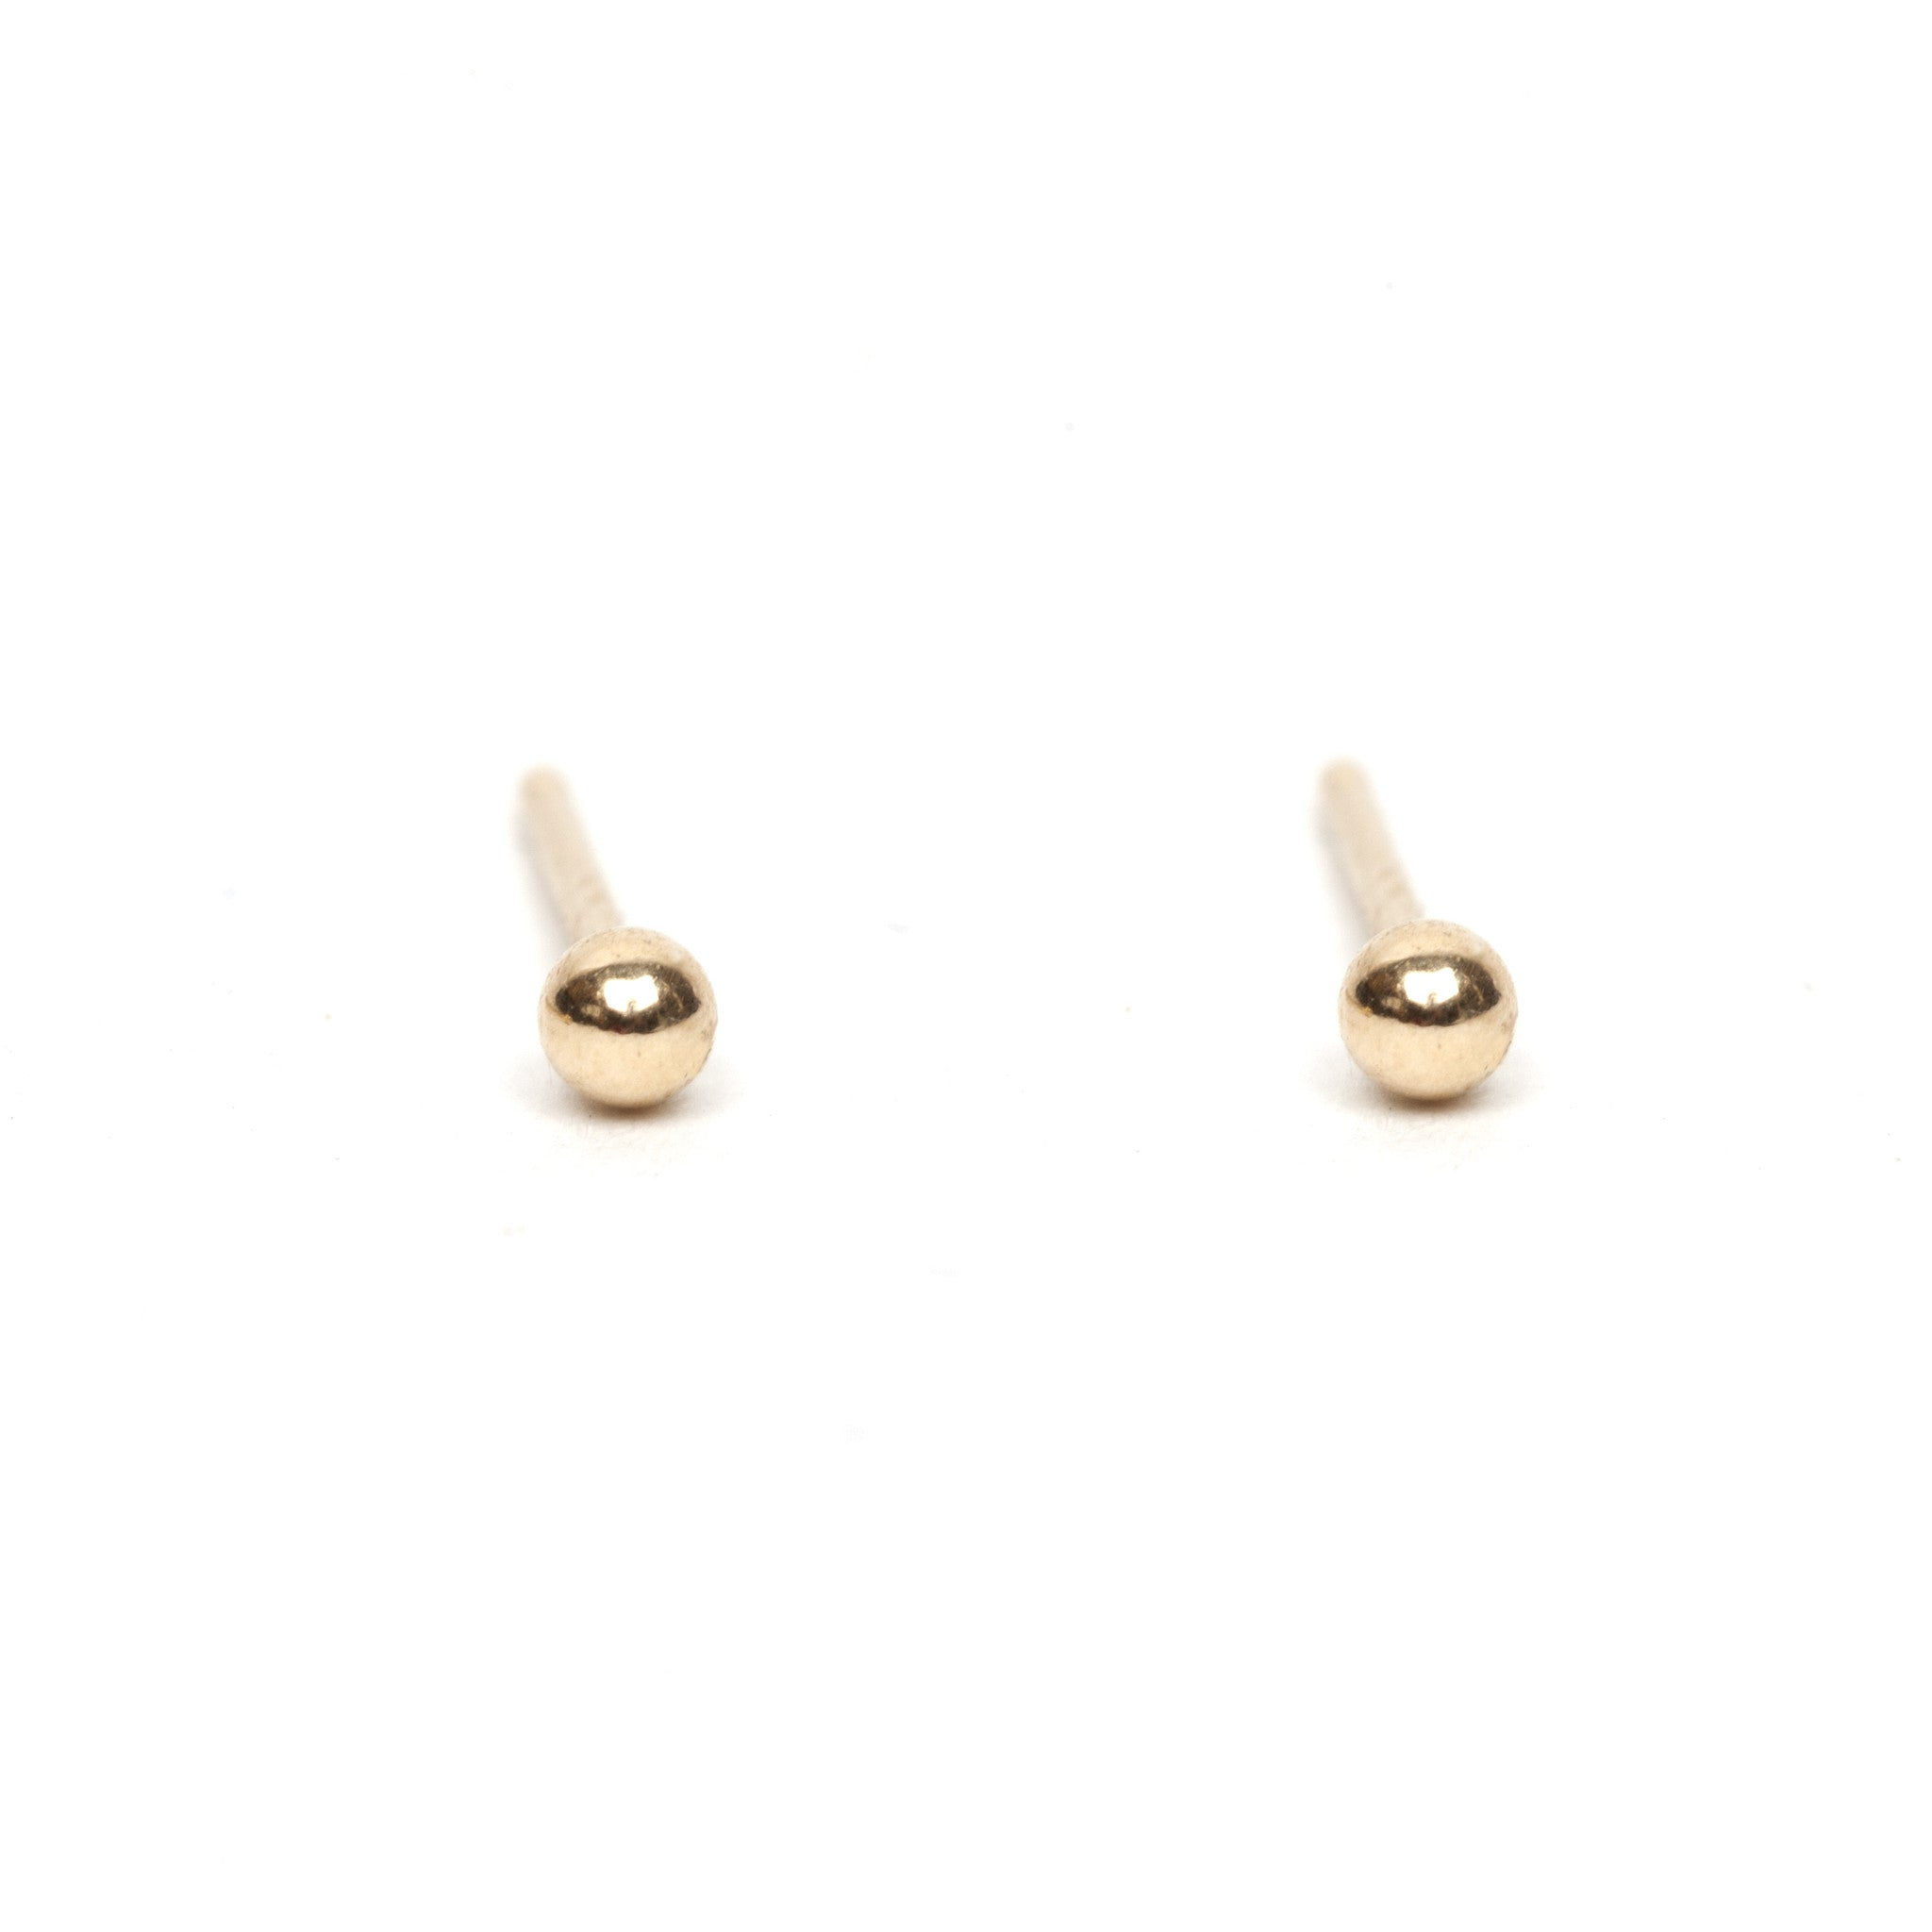 Tiny Gold Ball Stud Earring